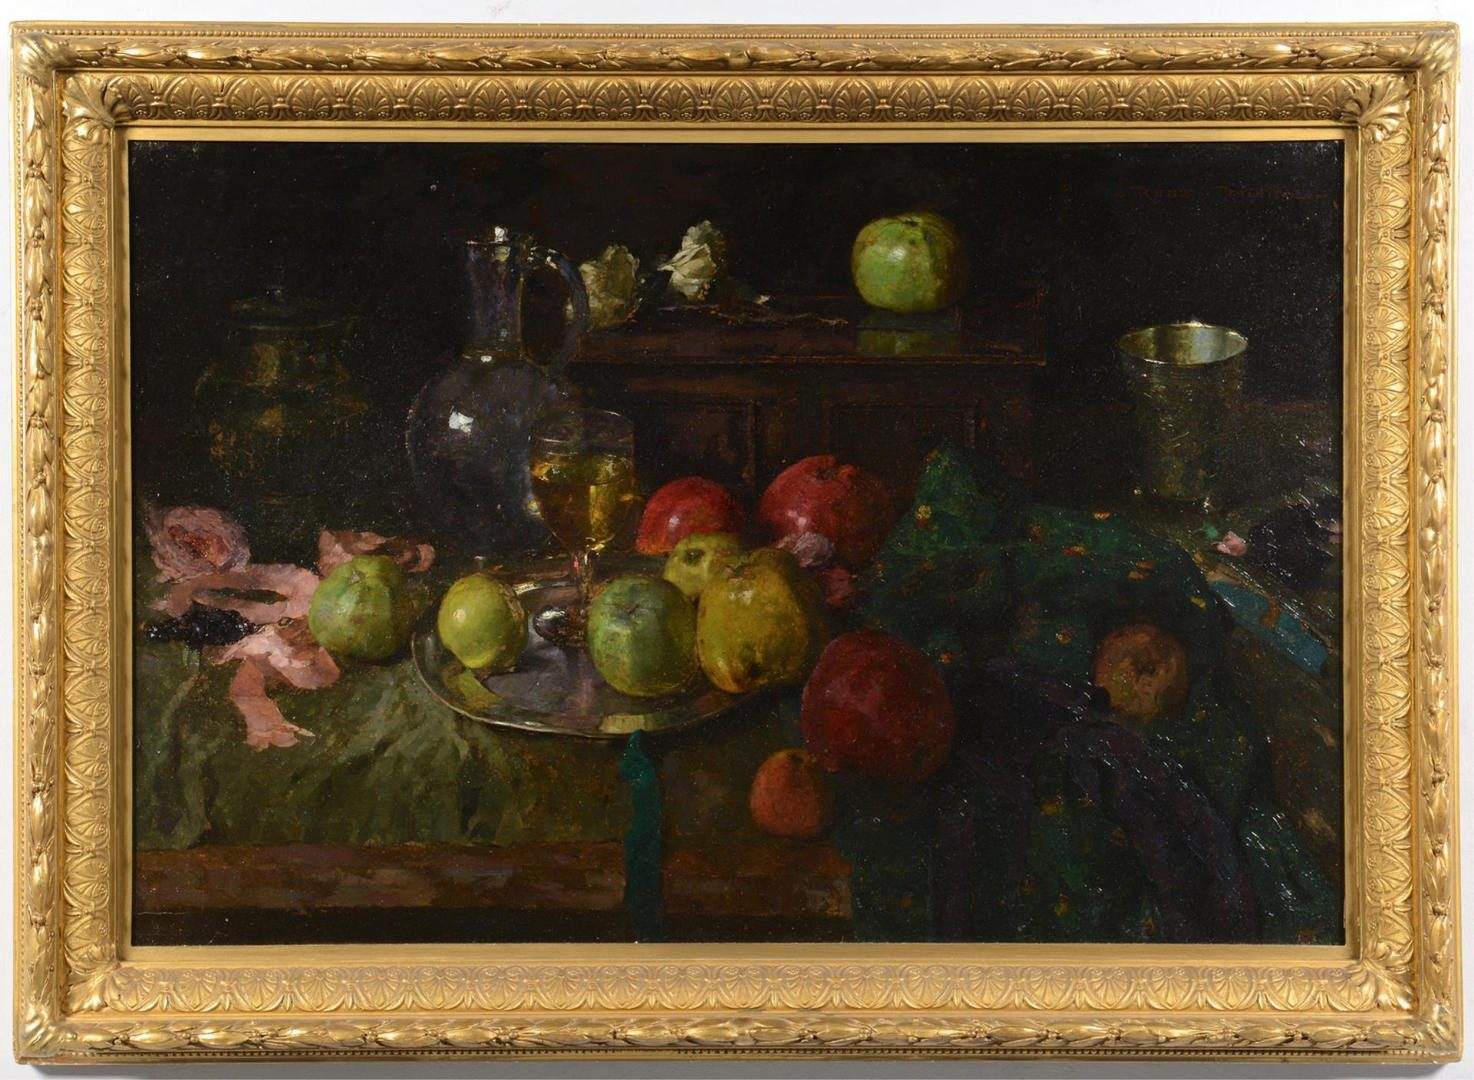 Lot 872: Rene Reinicke, Still Life with Wine and Apples